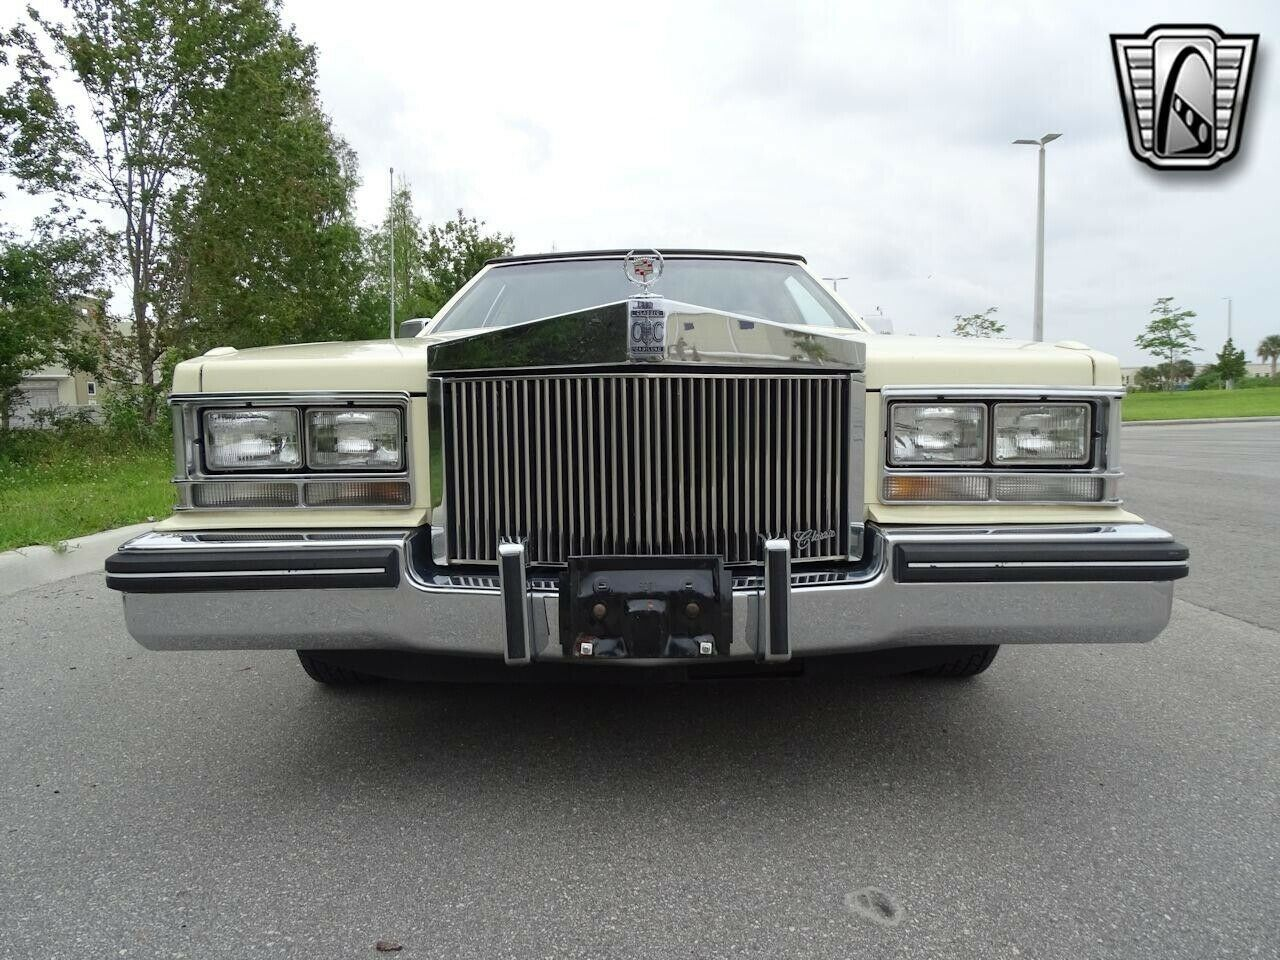 Yellow 1983 Cadillac Seville  4.1L V8 3 Speed Automatic Available Now!